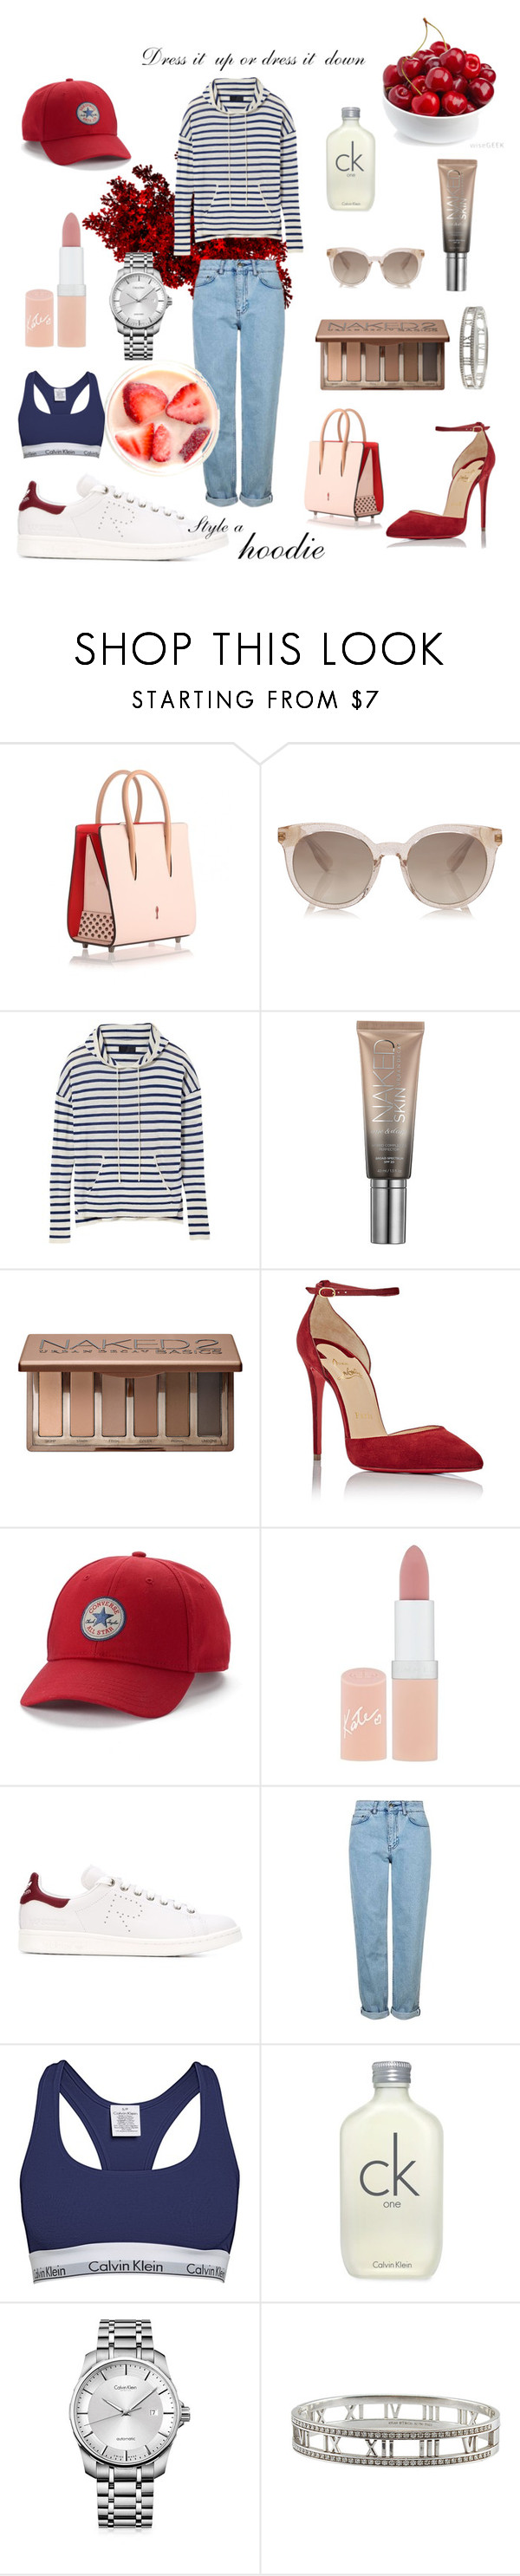 """""""Hoodie Contest"""" by elliekitcher ❤ liked on Polyvore featuring Christian Louboutin, Urban Decay, Converse, Rimmel, adidas, Topshop, Calvin Klein and Tiffany & Co."""